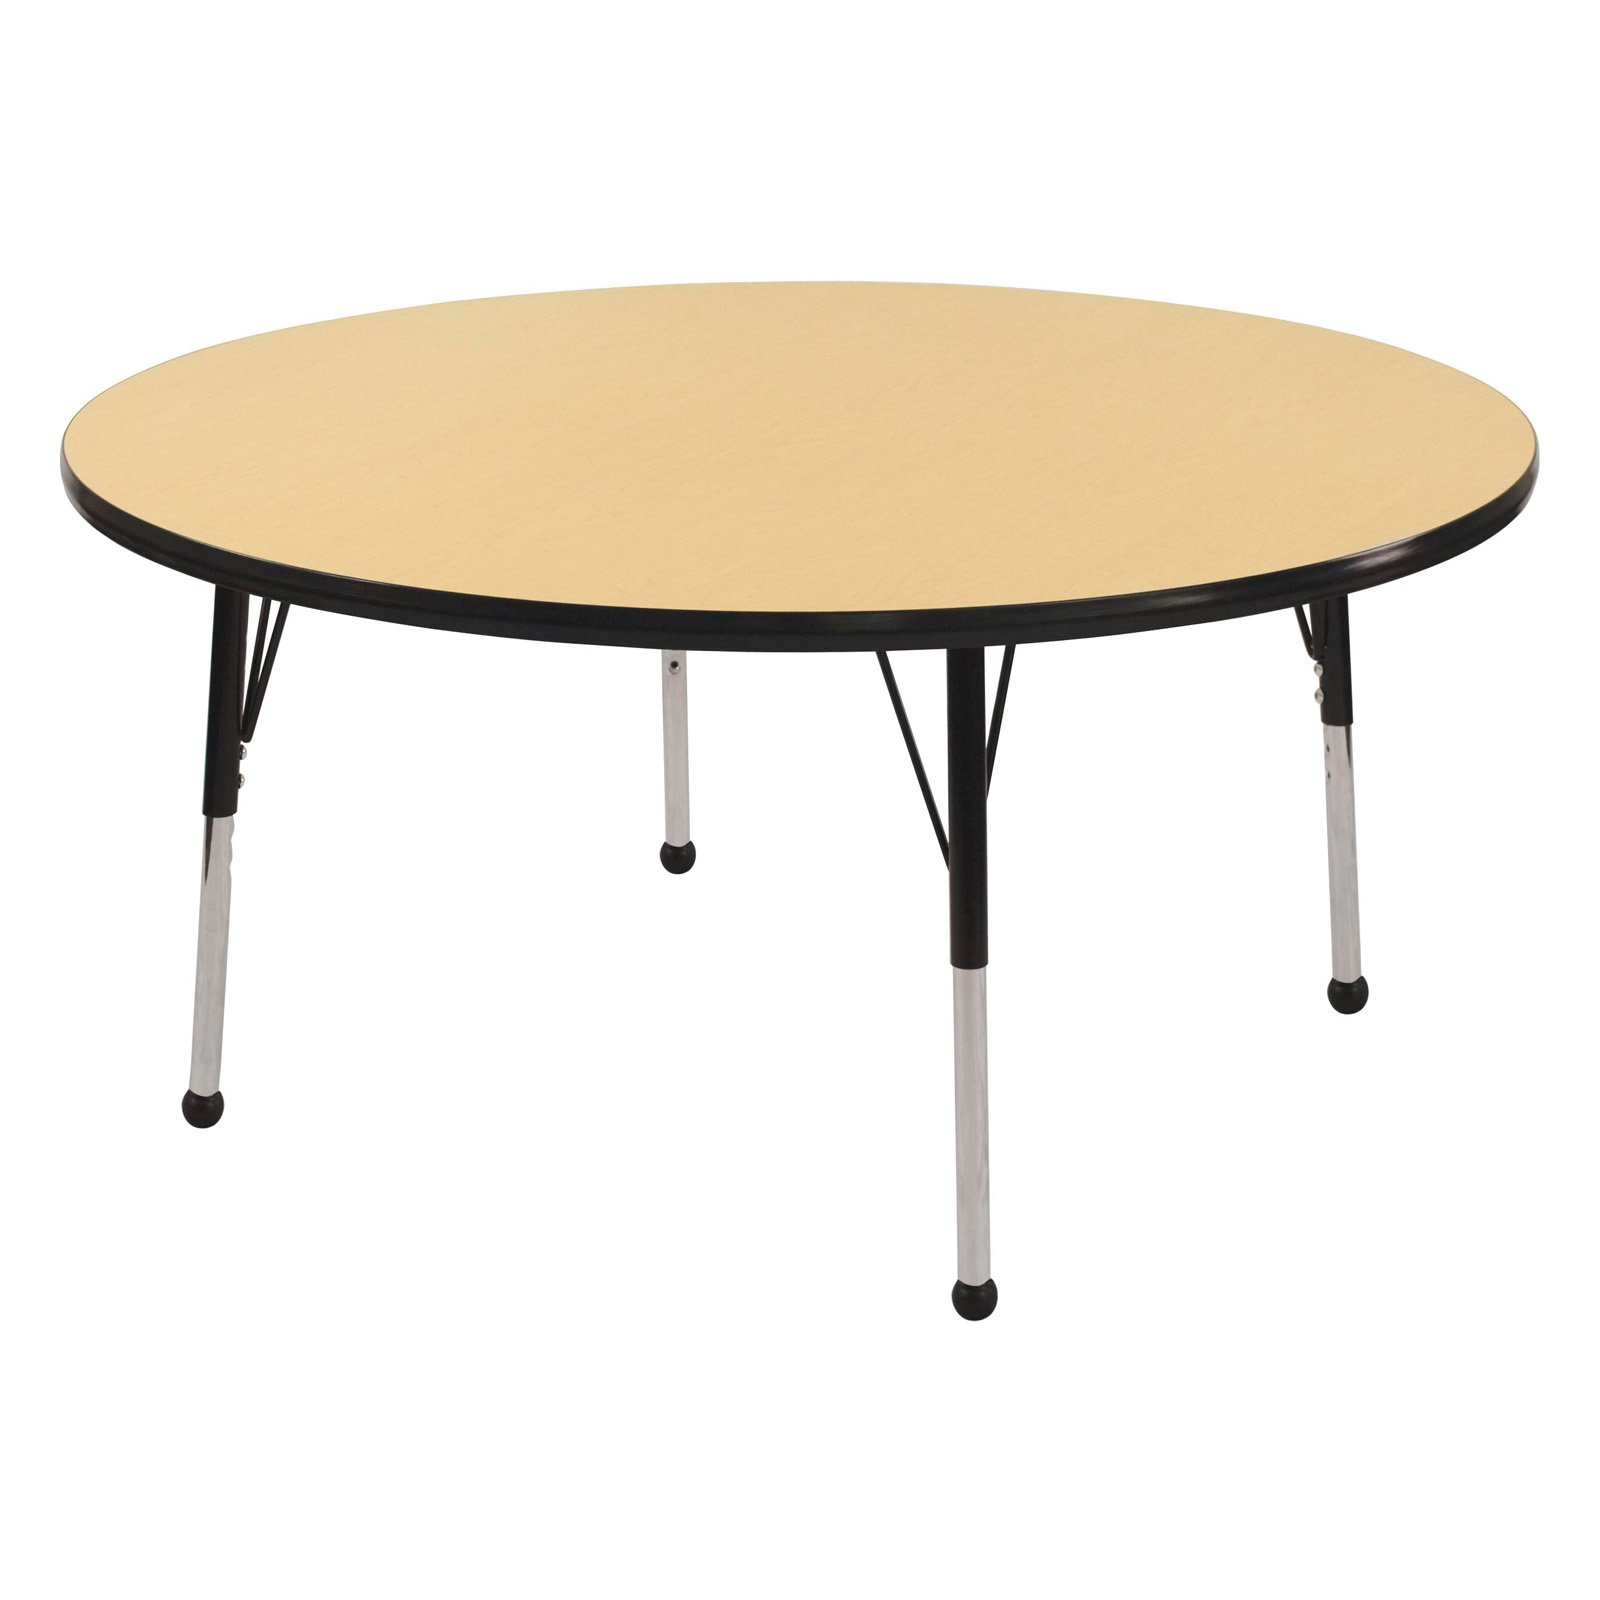 Adjustable Activity Table in Maple and Black (Toddler: 30 in. Dia. x 15 in. - 23 in. H)